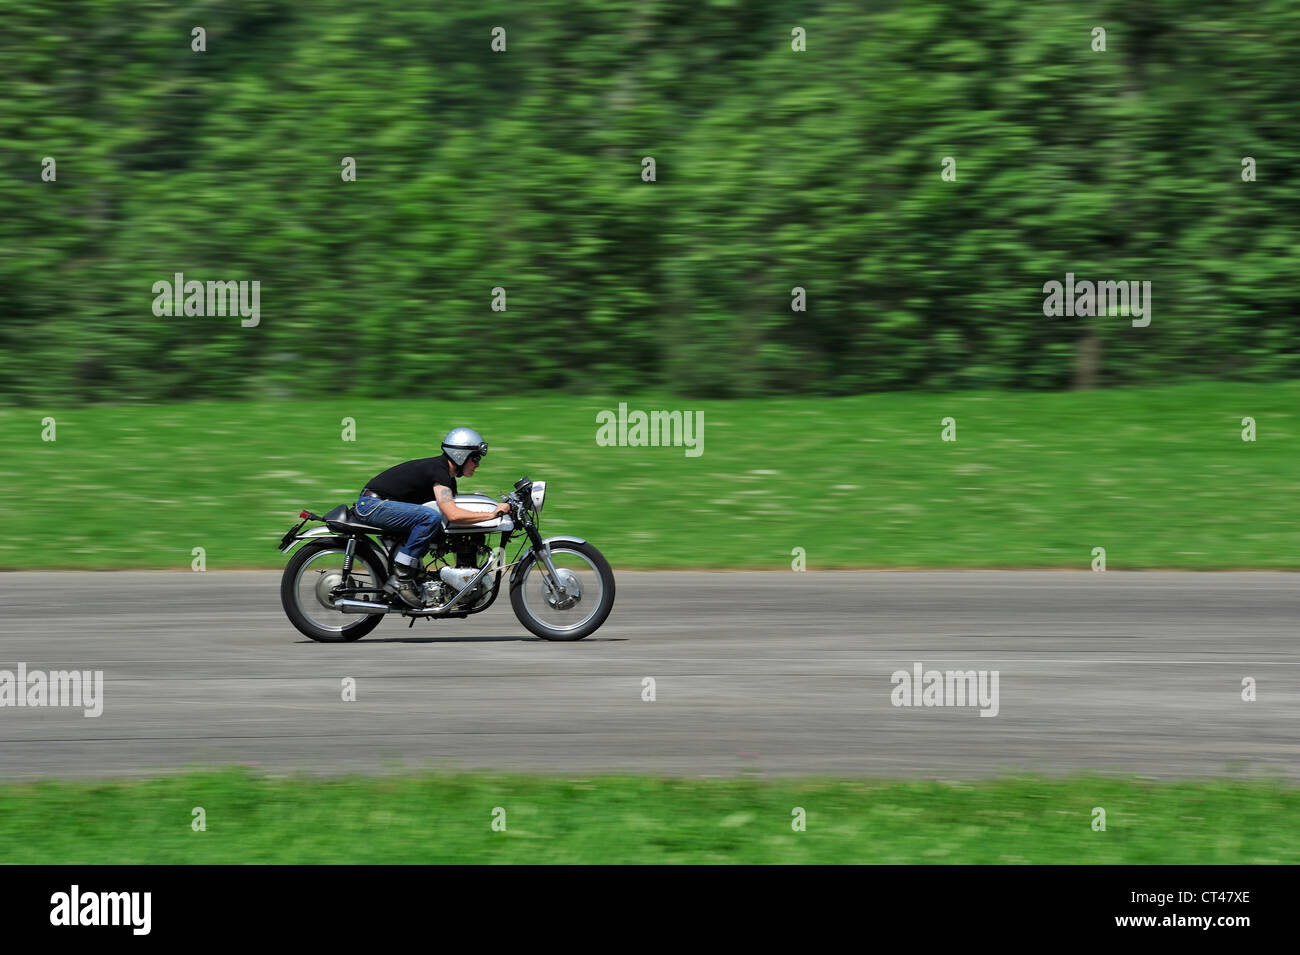 A motorcyclist travelling at high speed. Motion blur on wheels and background Stock Photo